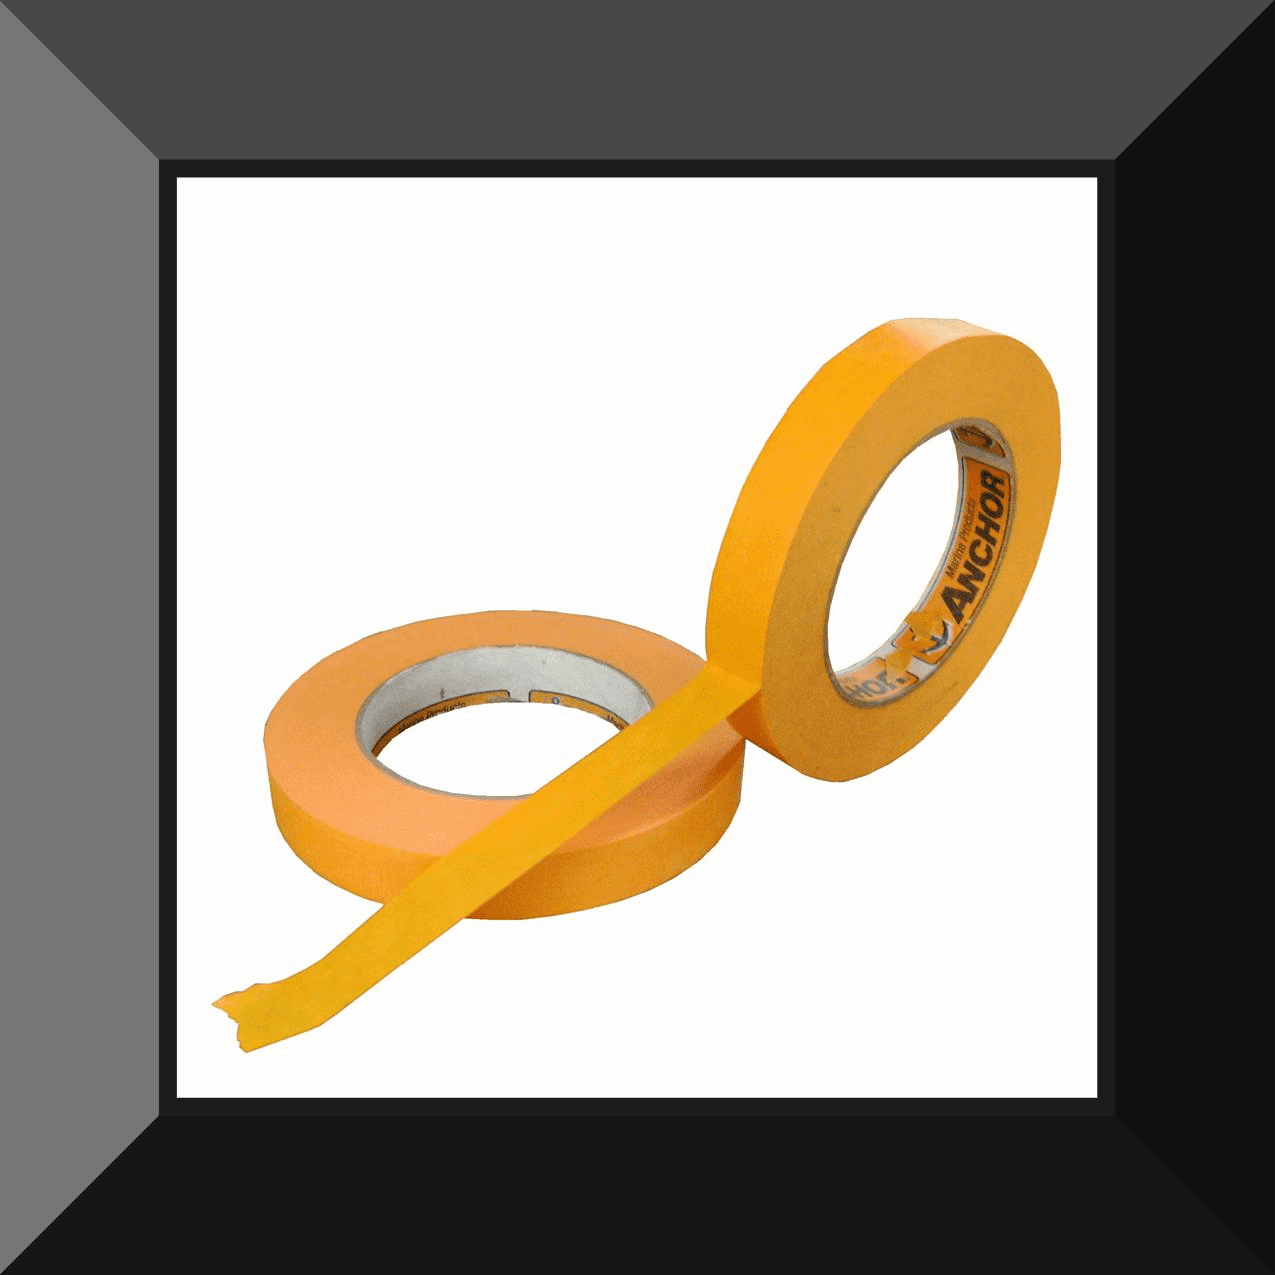 AME-OM-1855 ORANGE MASK MASKING TAPE 3/4 in SOLD BY THE ROLL 12 ROLLS PER SLEEVE 48 ROLLS PER CASE